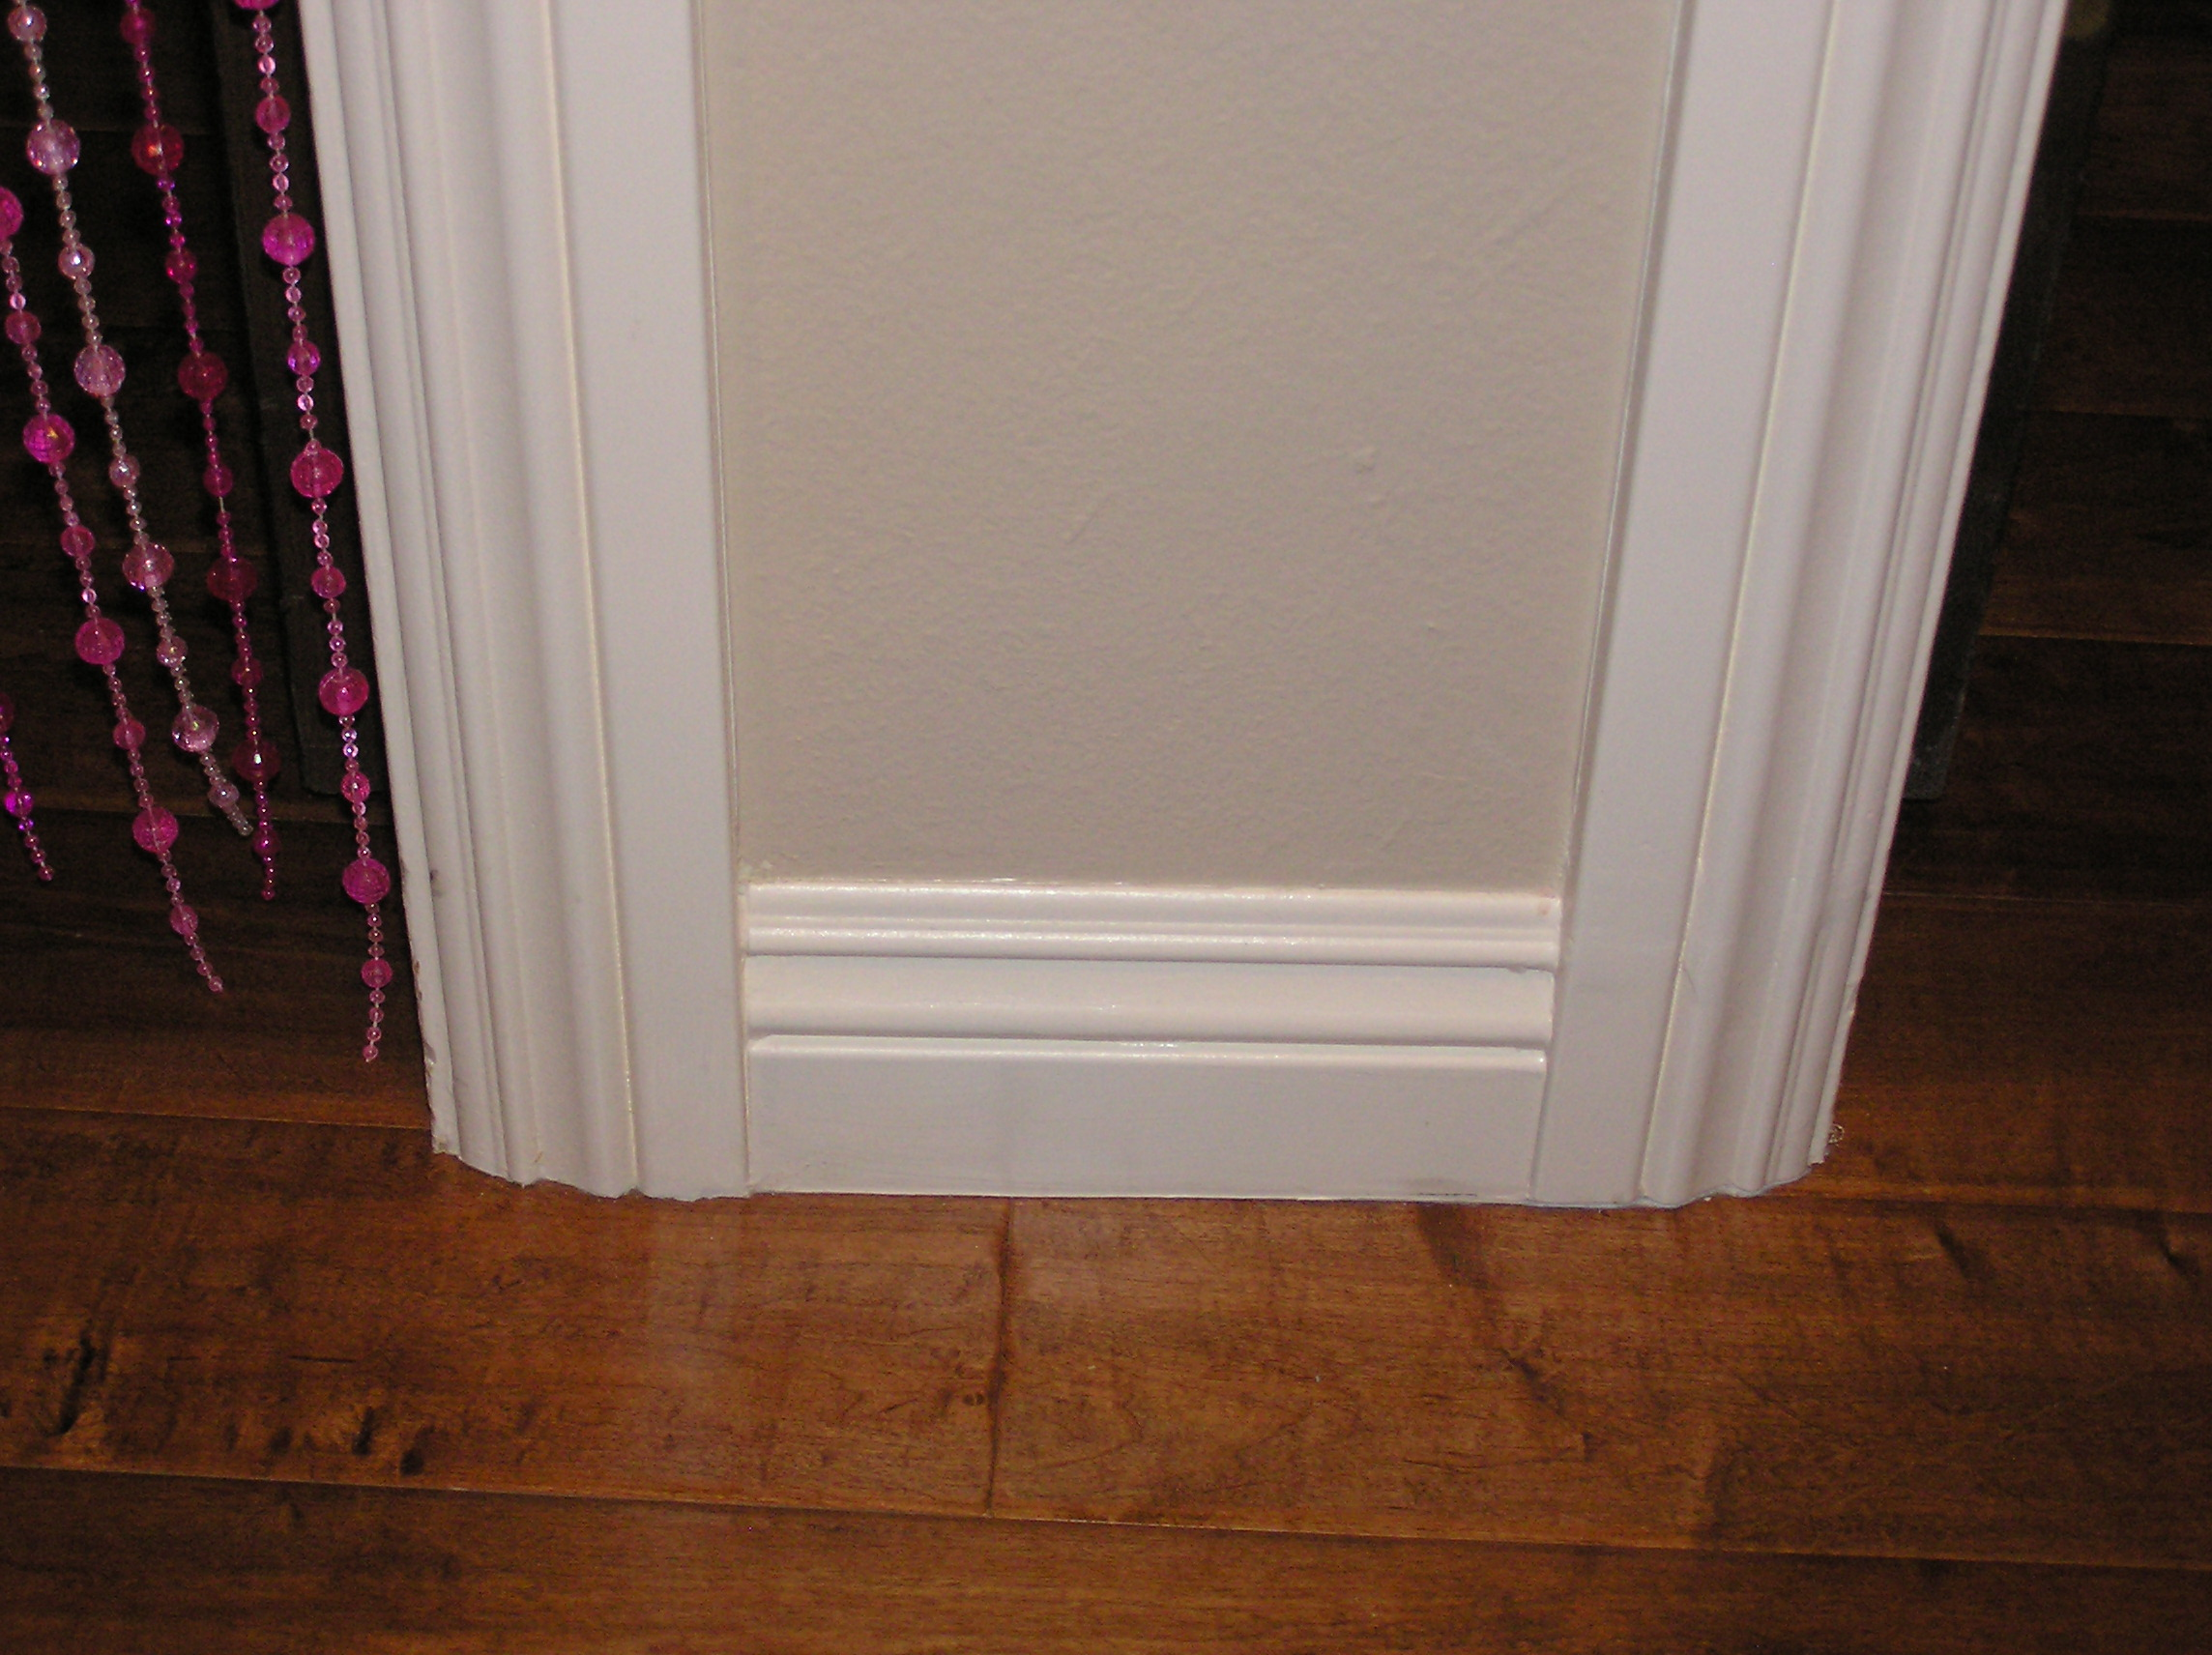 inspiring baseboard Molding as door sills